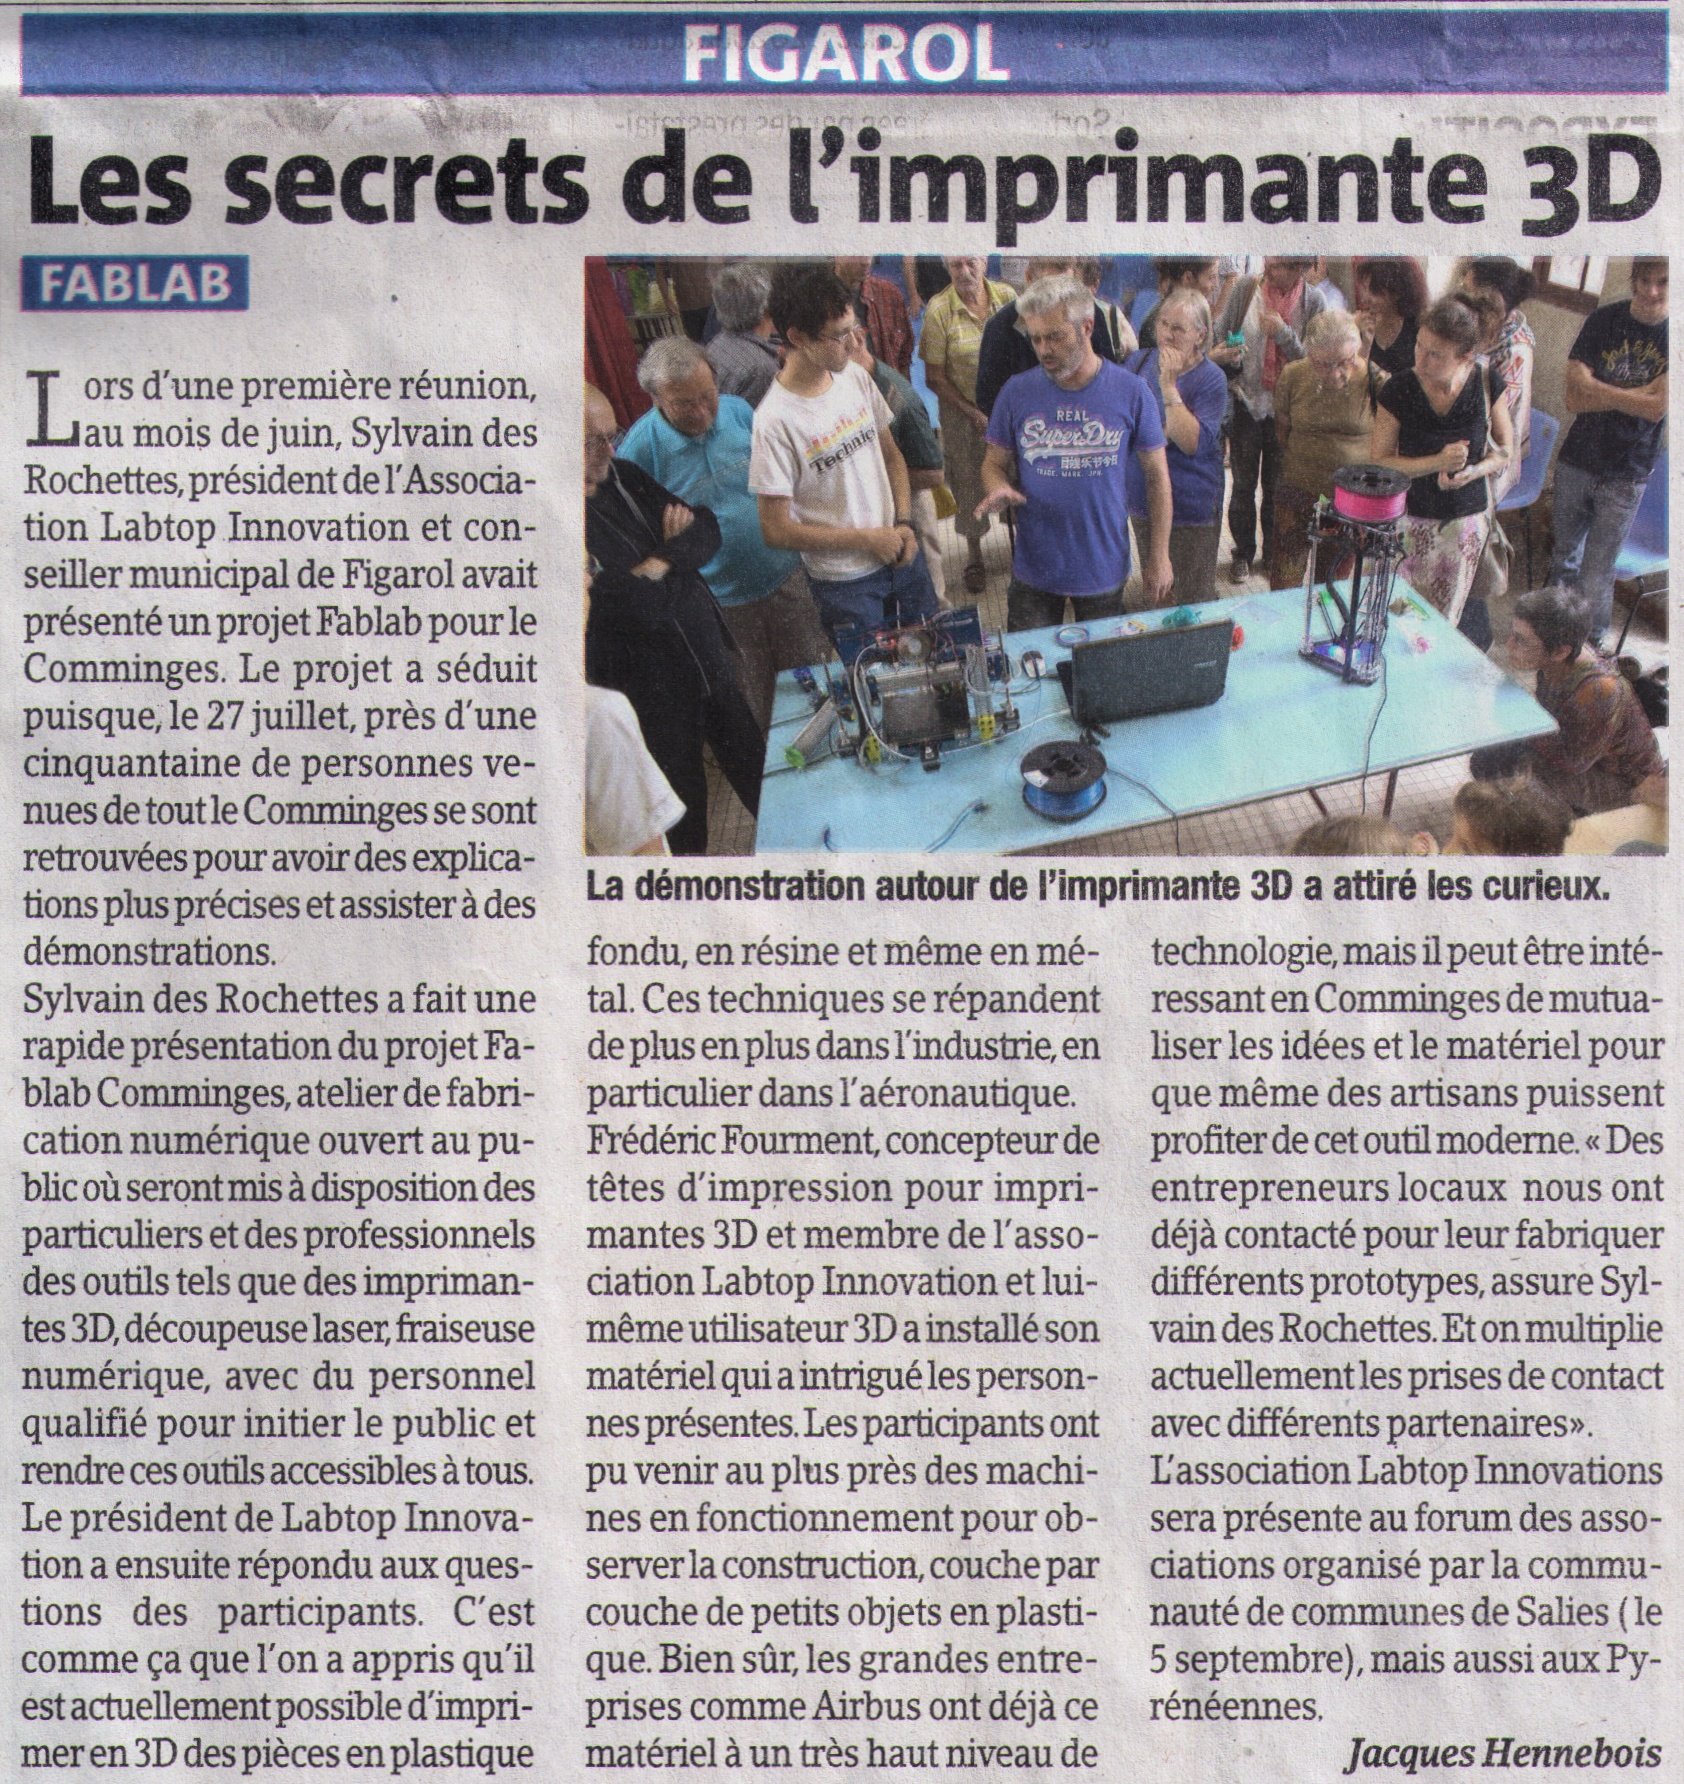 fablab-comminges-imprimante-3d-gazette